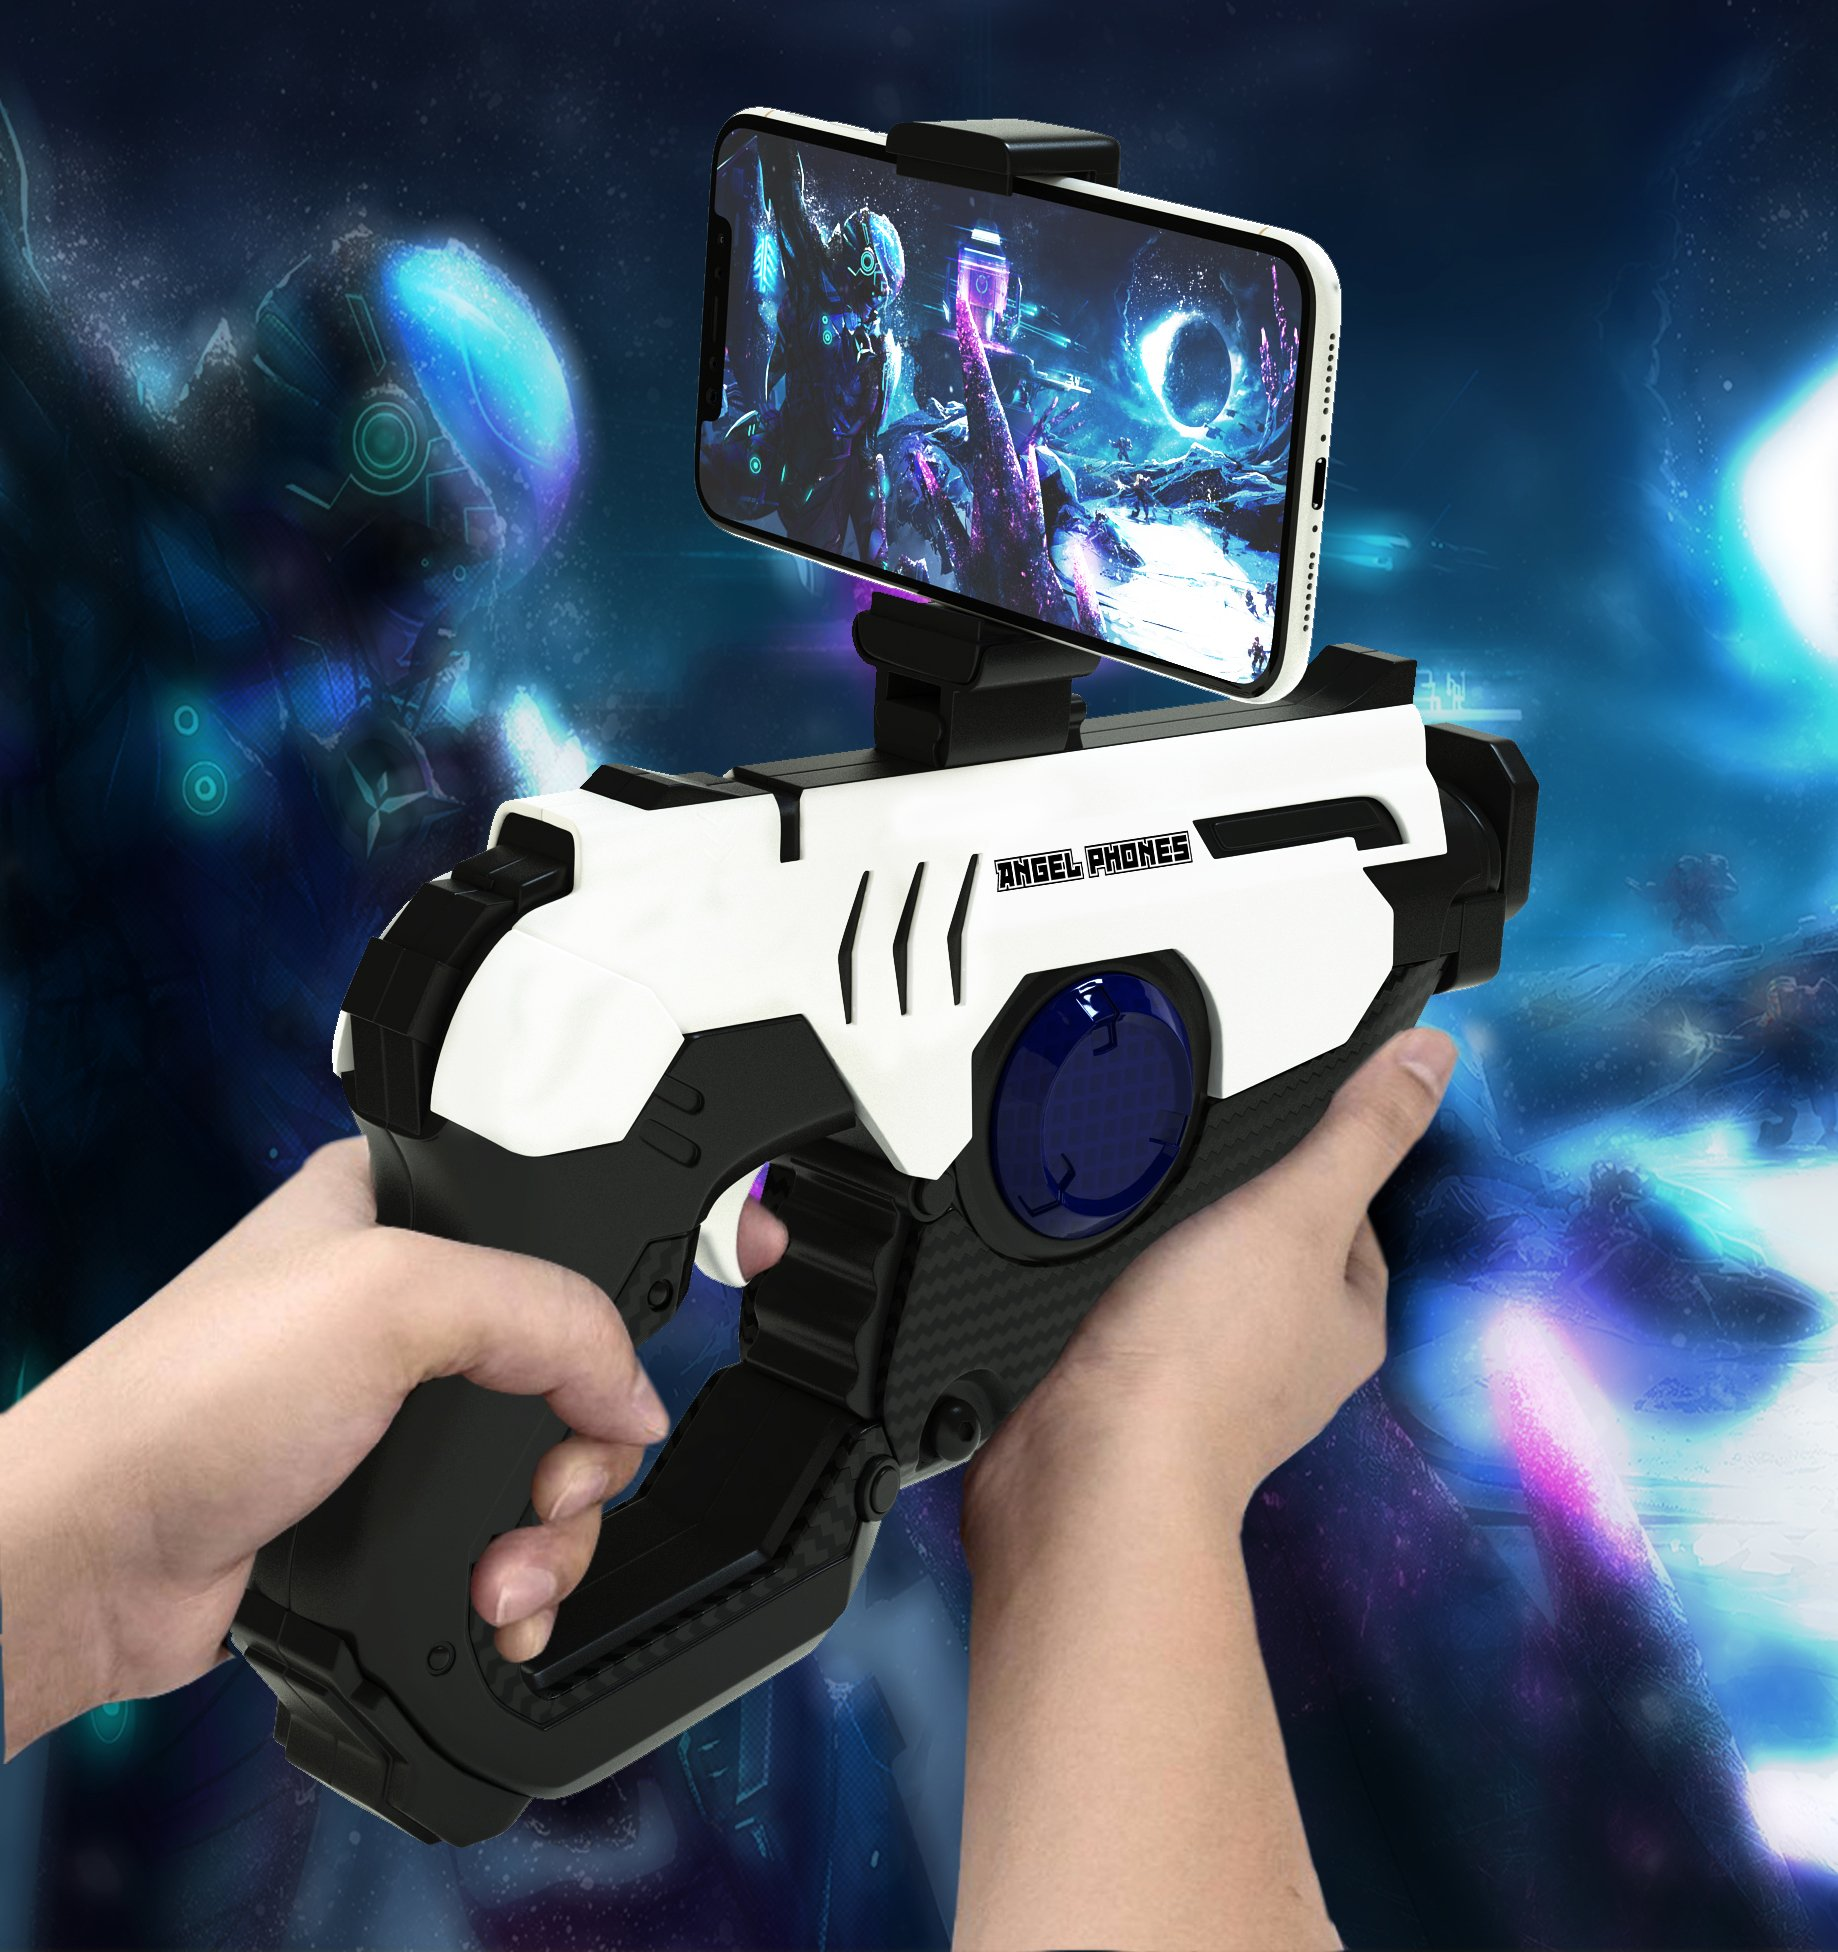 Bluetooth AR Game Gun Toy, Reality Controller with Cell Phone Stand Holder, New 2018 Model The Most Advanced 360 Degrees Video Vision, Hundreds of Games for iPhone, Android and all other Smart Phones!